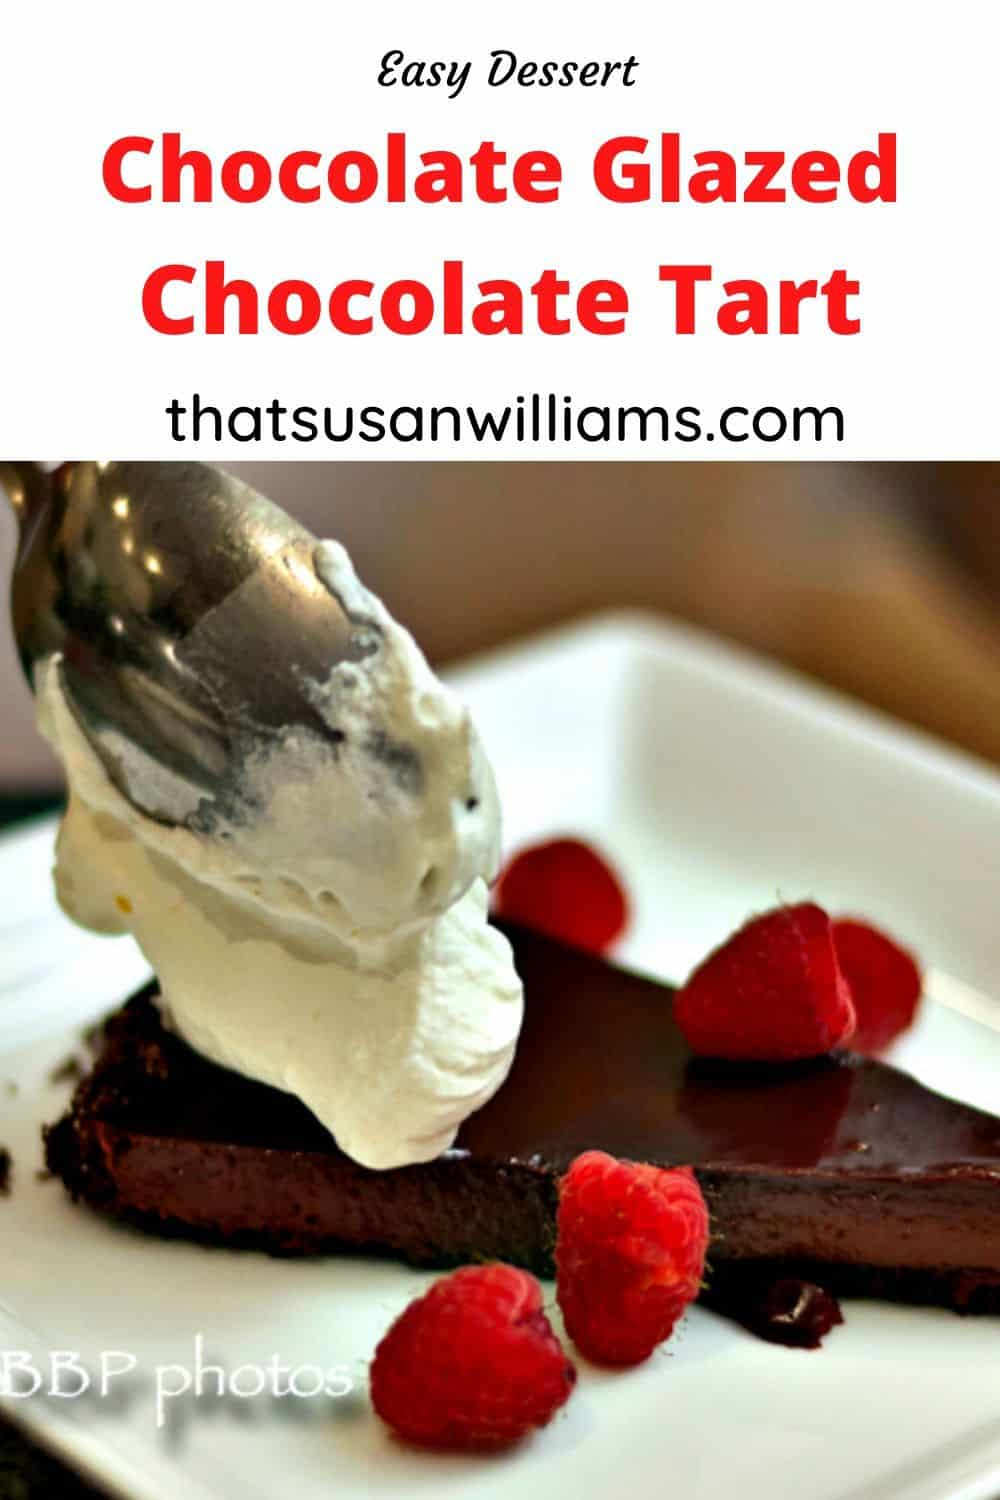 Easy and Delicious Chocolate Glazed Chocolate Tart